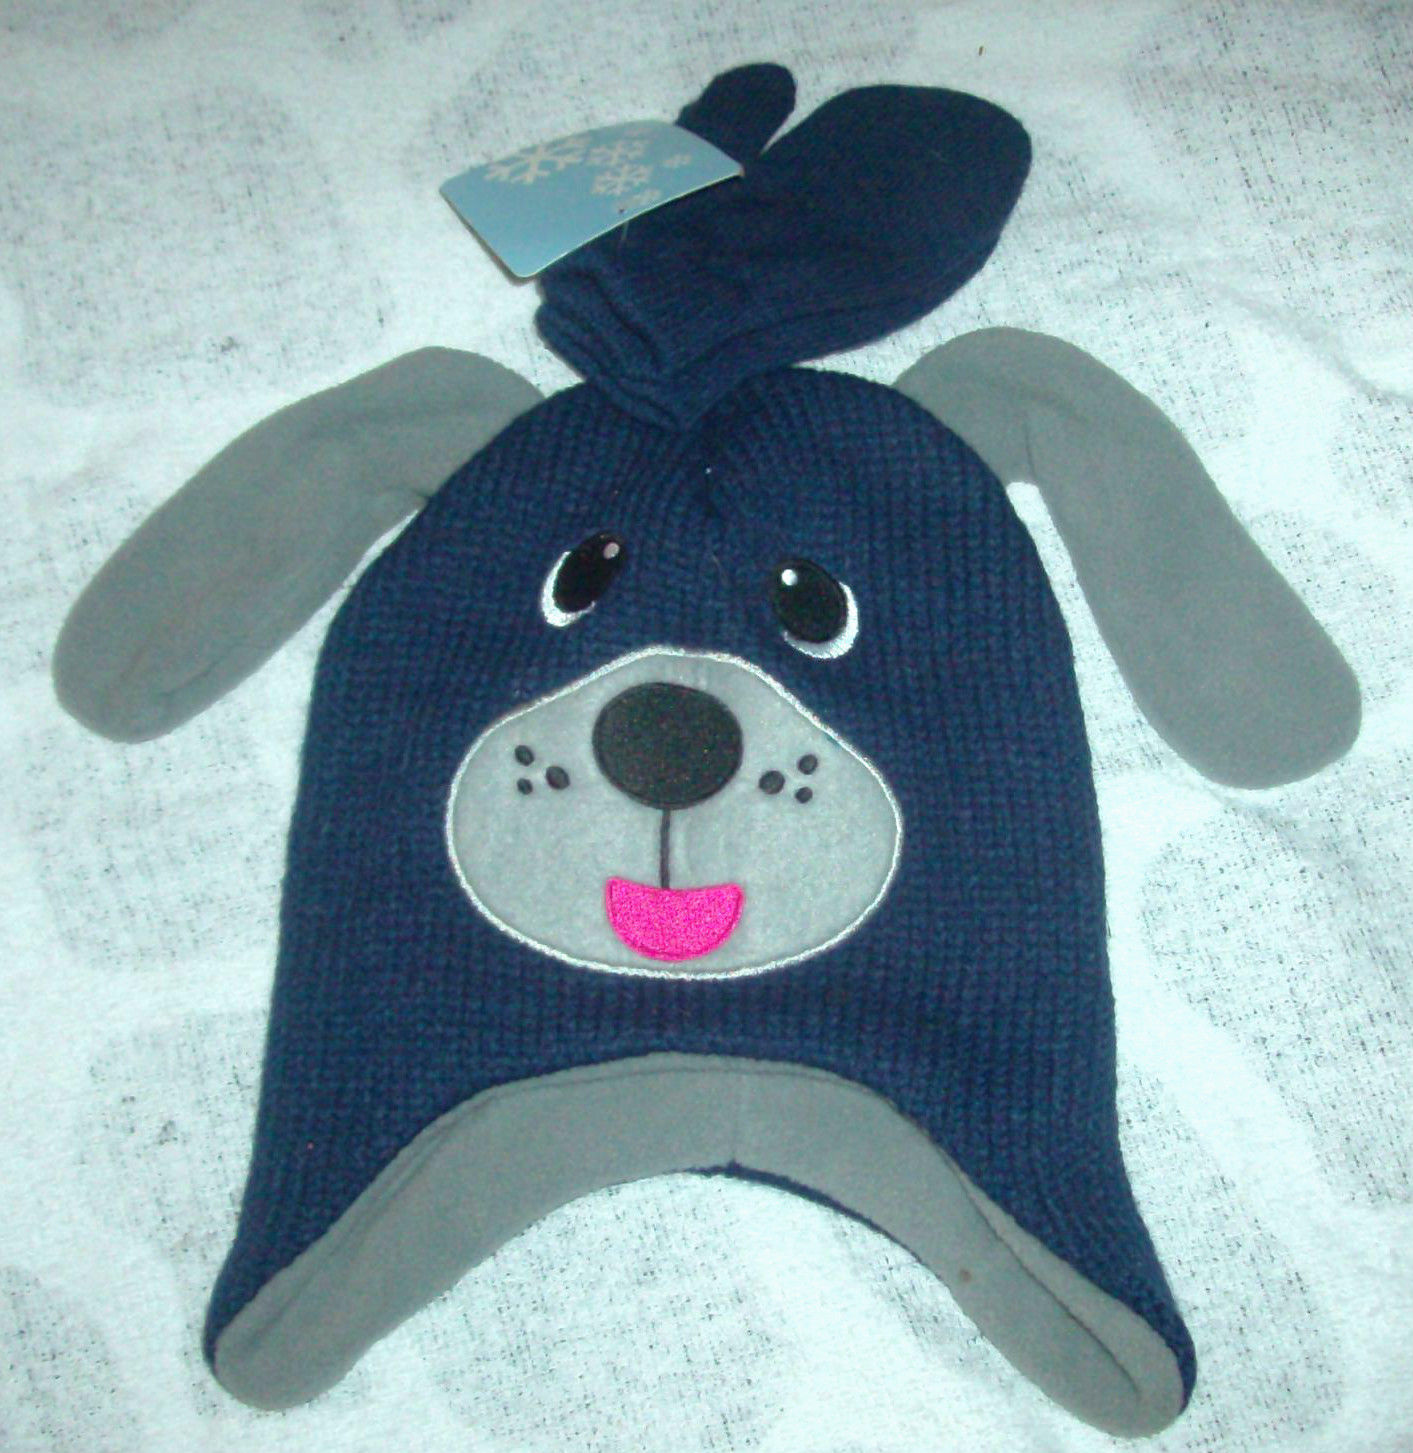 Stocking Cap / Hat Boys Navy & Gray Dog Face Hat with Mittens